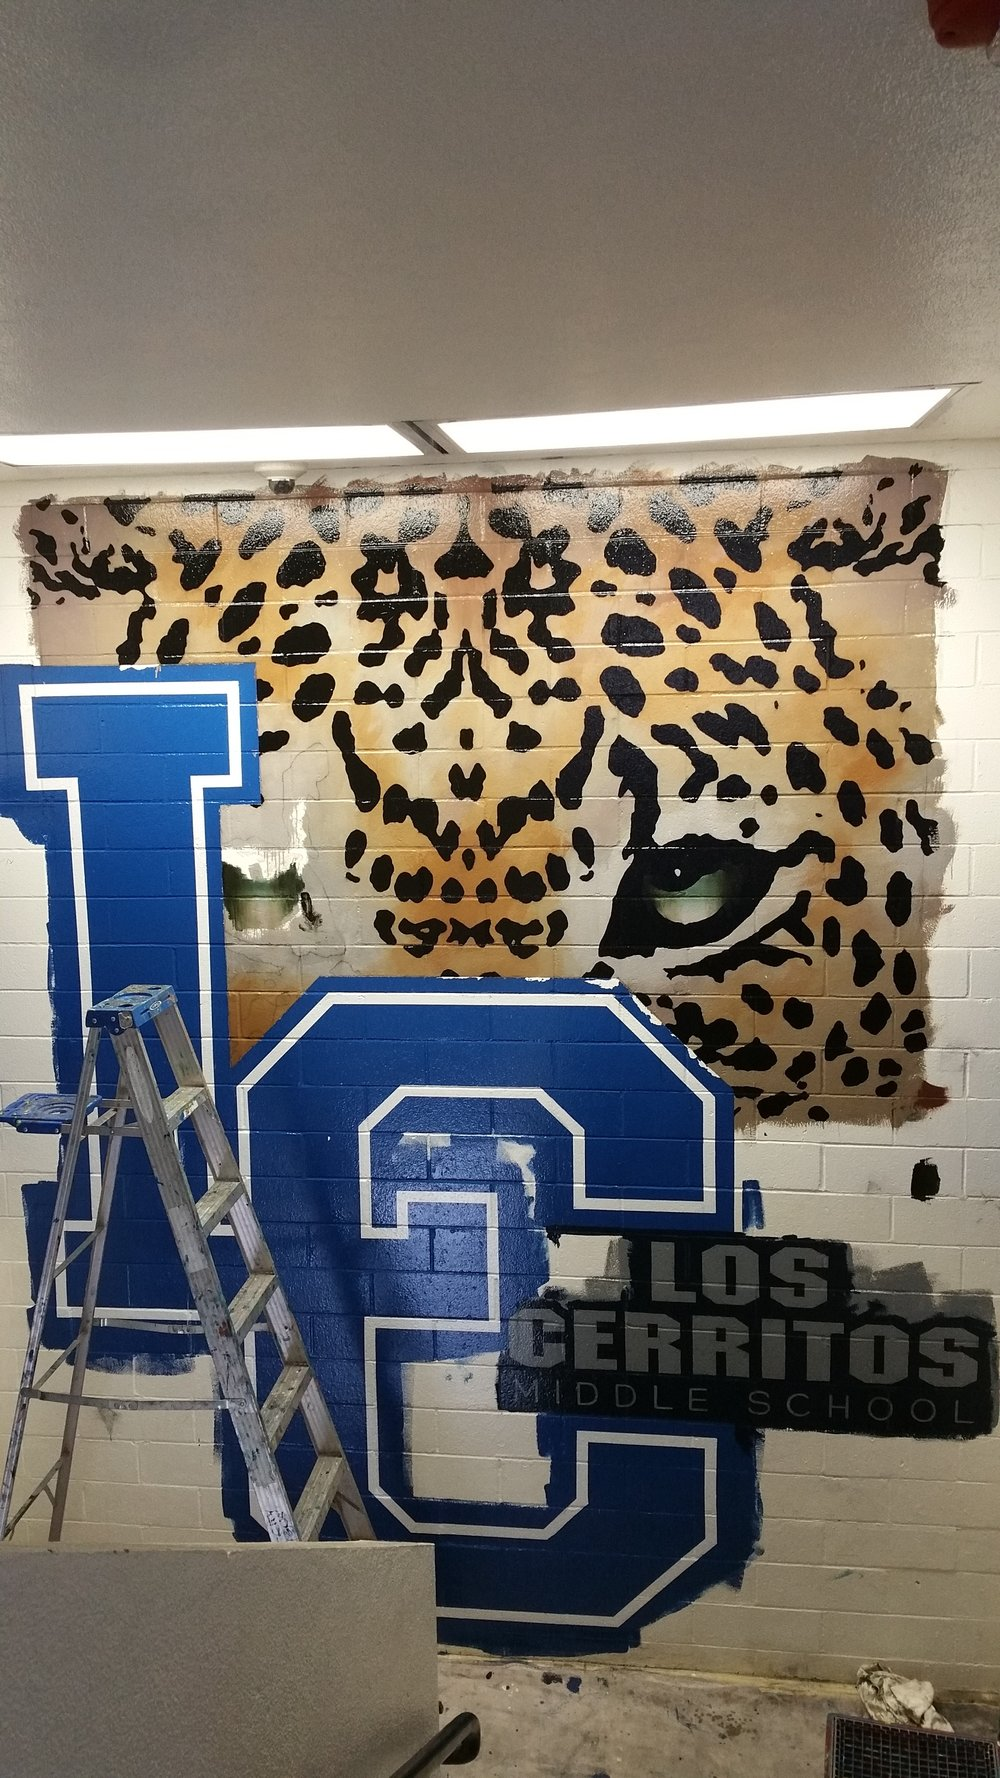 Third day saw the final work being done.More blending on the eyes… cut-in the background color around the lettering… paint the leopard's infamous spots…